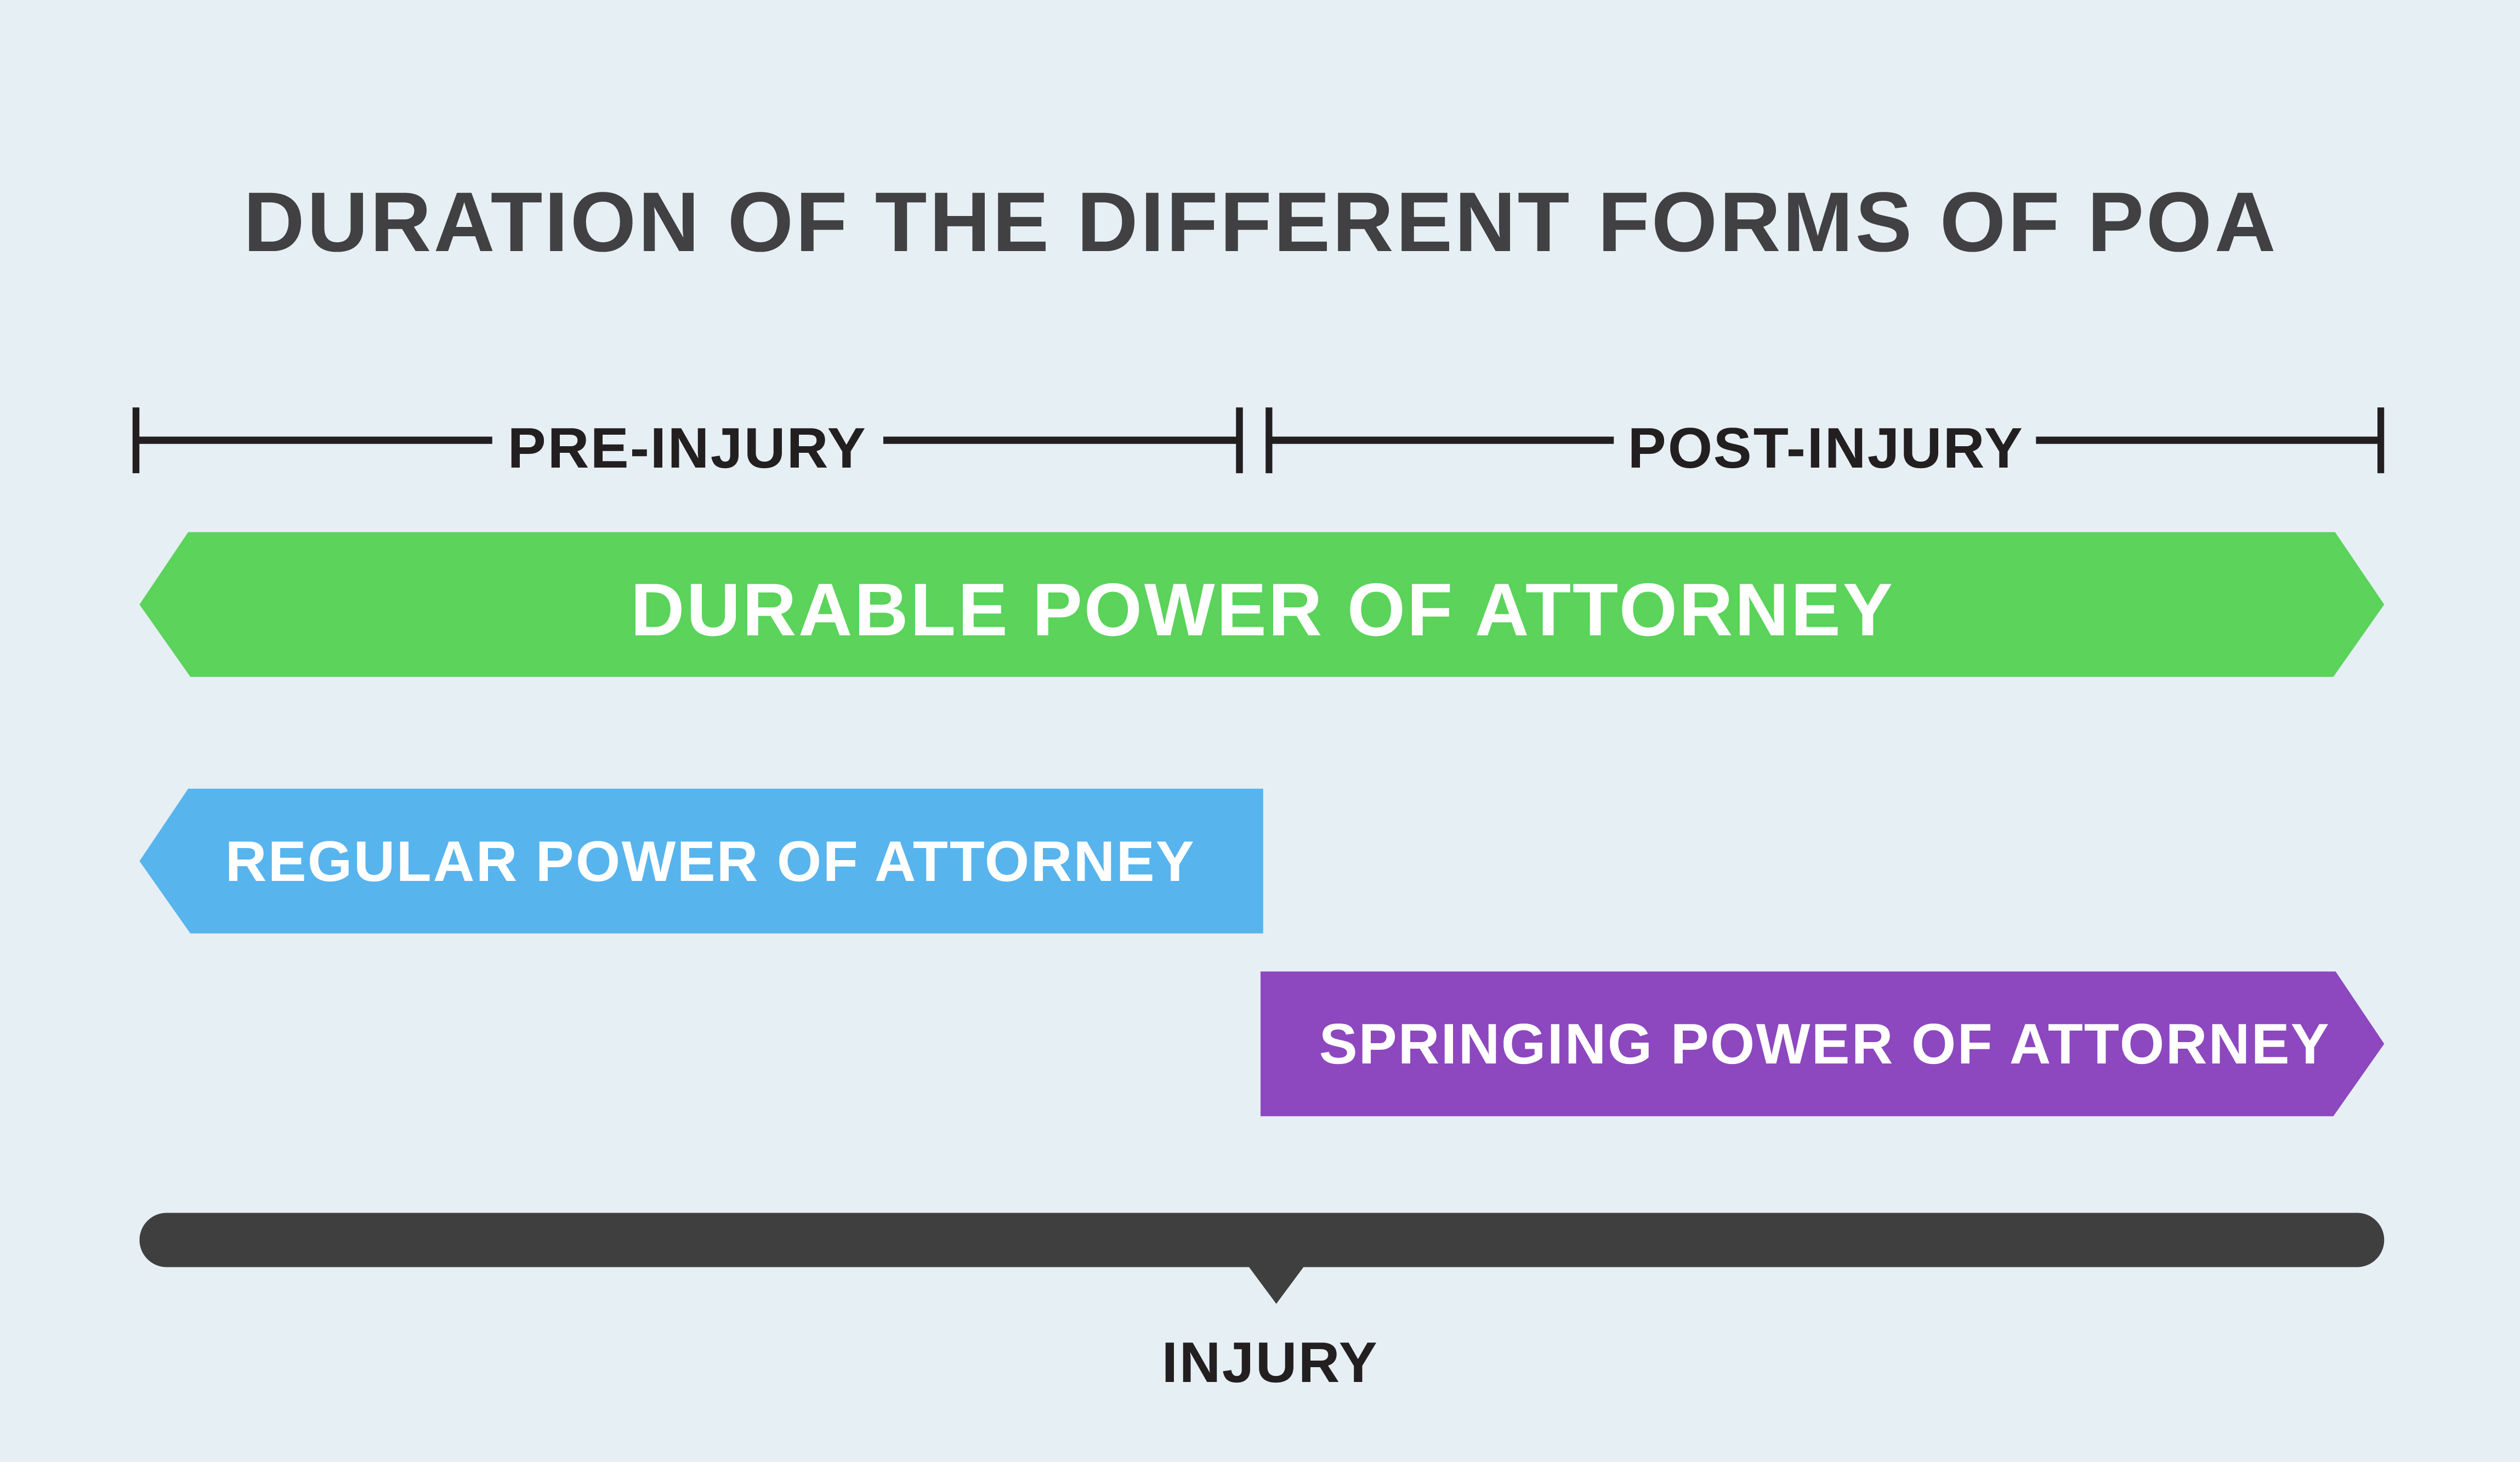 Timeline of different POAs, with durable lasting both before and after an injury which causes incapacitation